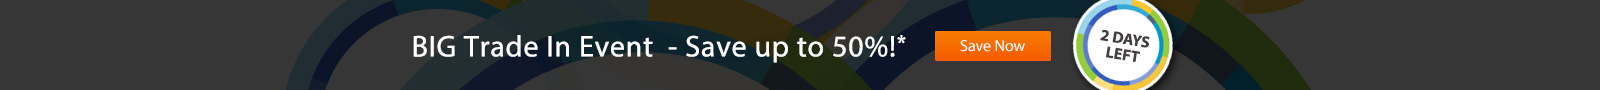 BIG Trade In Event  - Save up to 50%!*